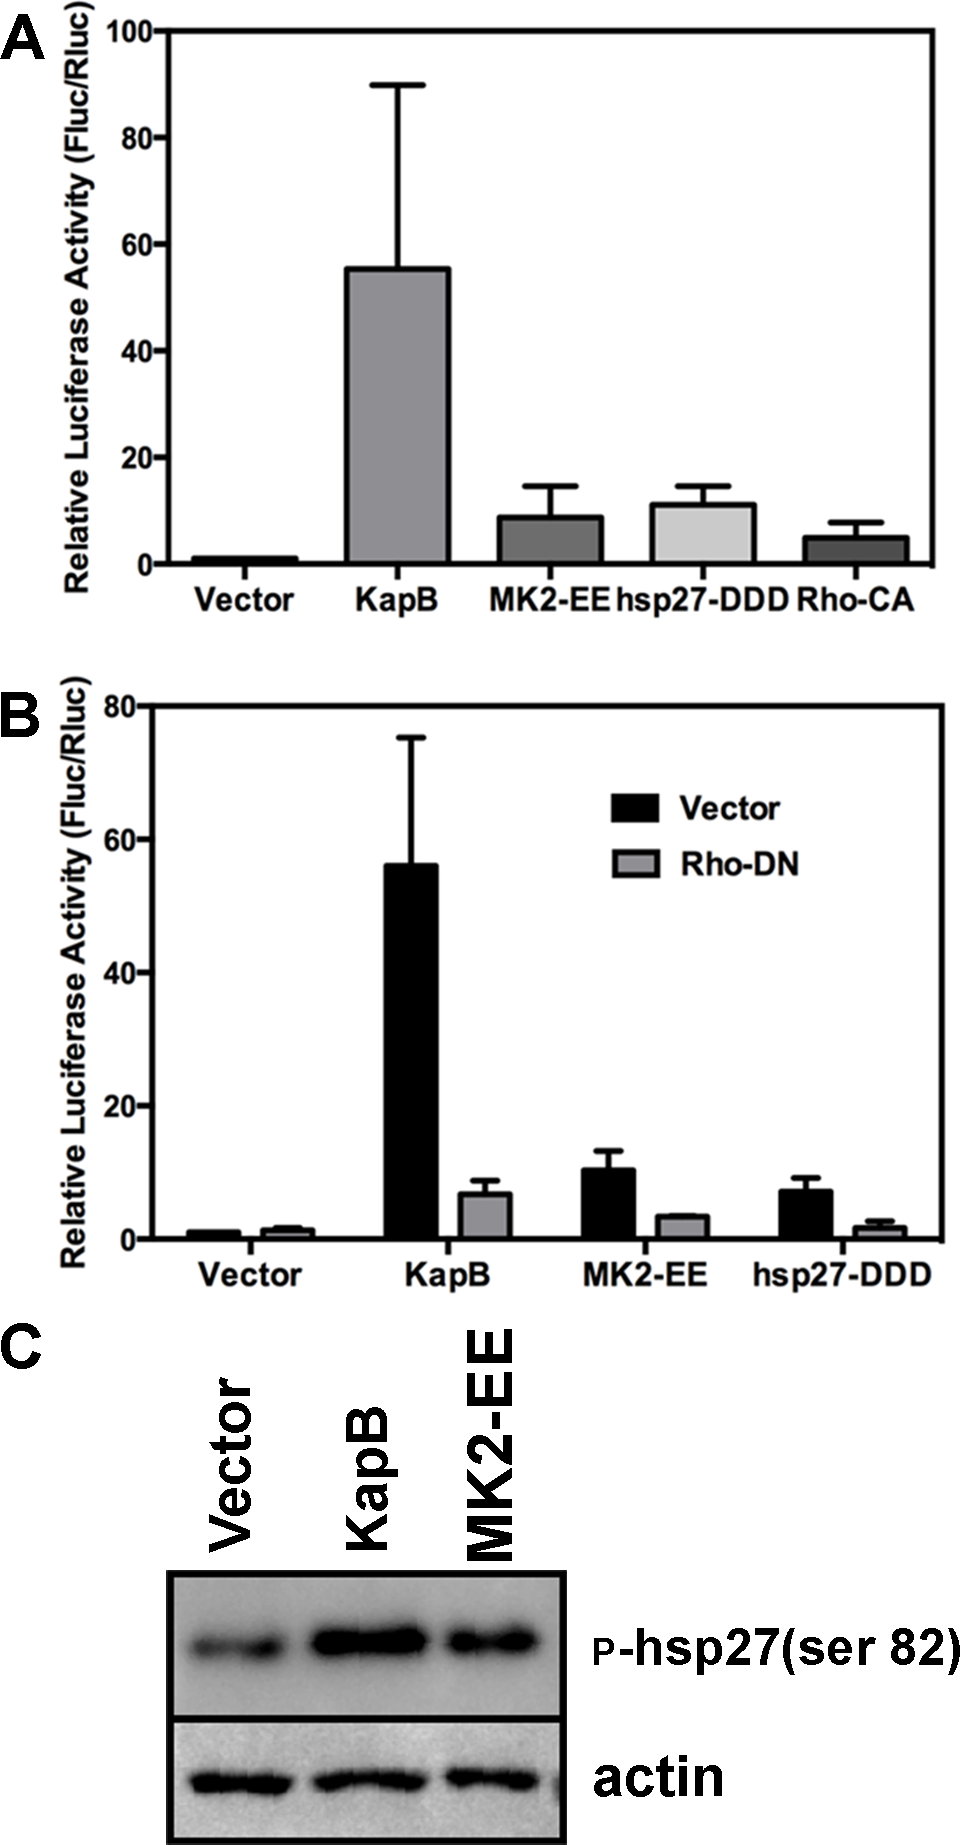 KapB-mediated activation of RhoA-GTPase is important for stabilization of ARE-containing mRNA.